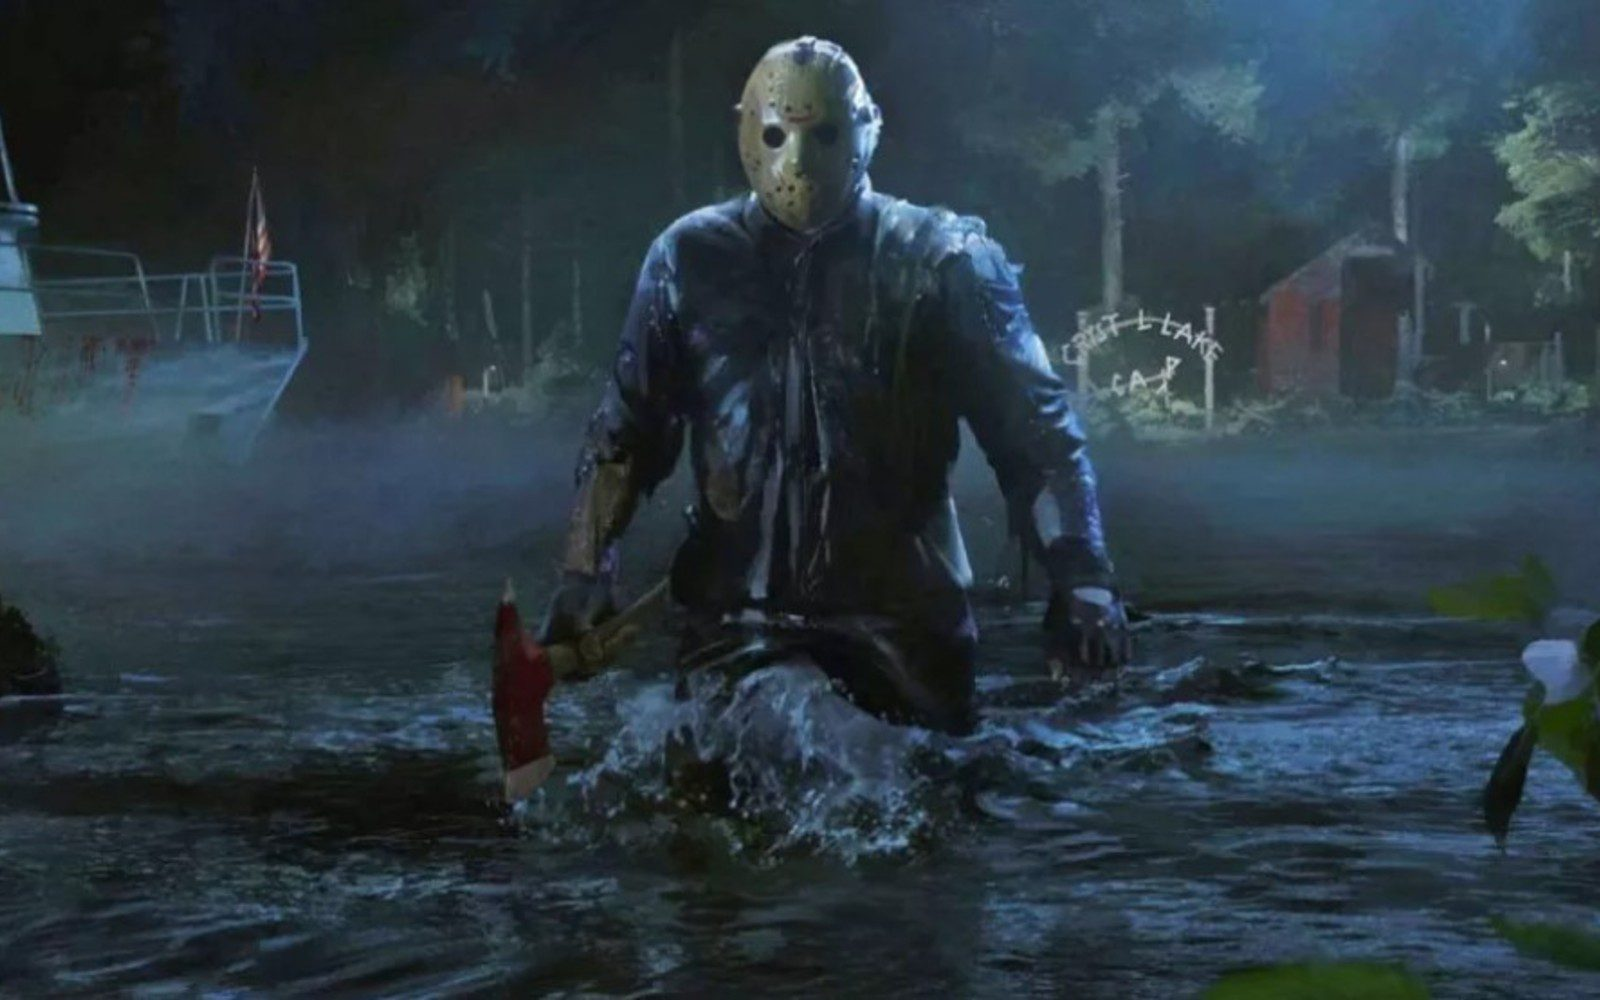 Friday the 13th Part 2 Filming Locations